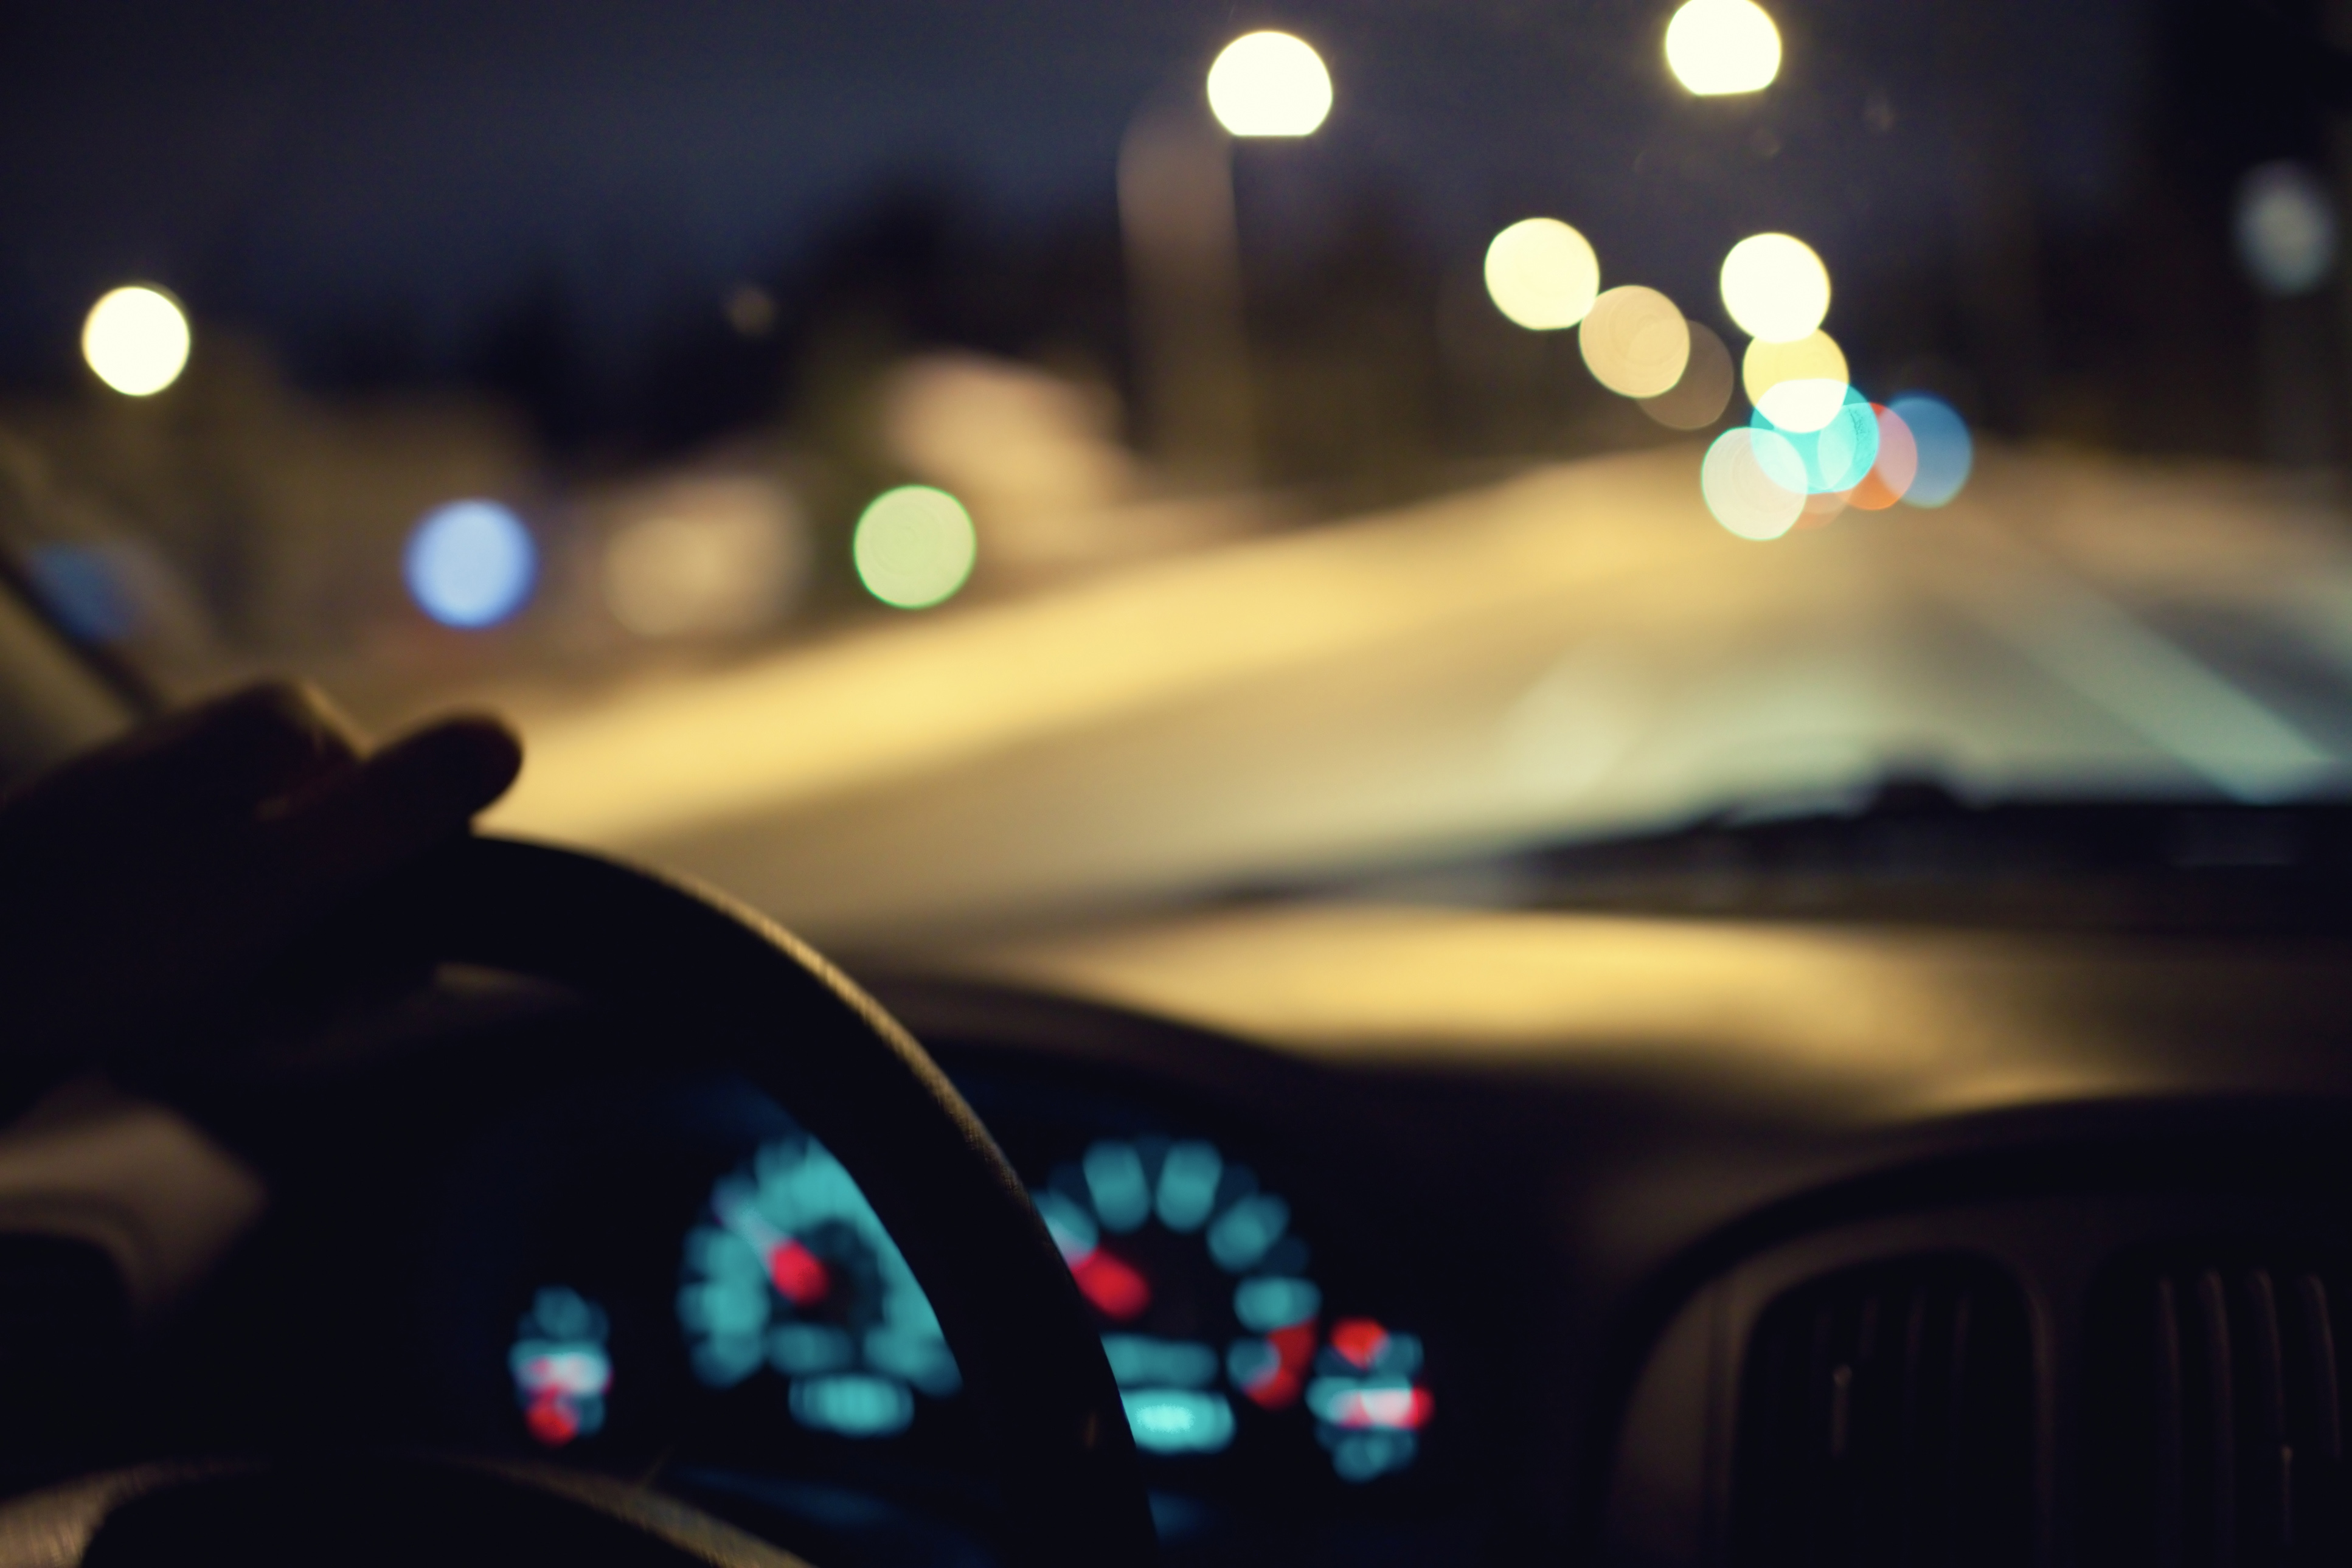 Driving With Adhd >> Coping With Impaired Night Vision While Driving | For